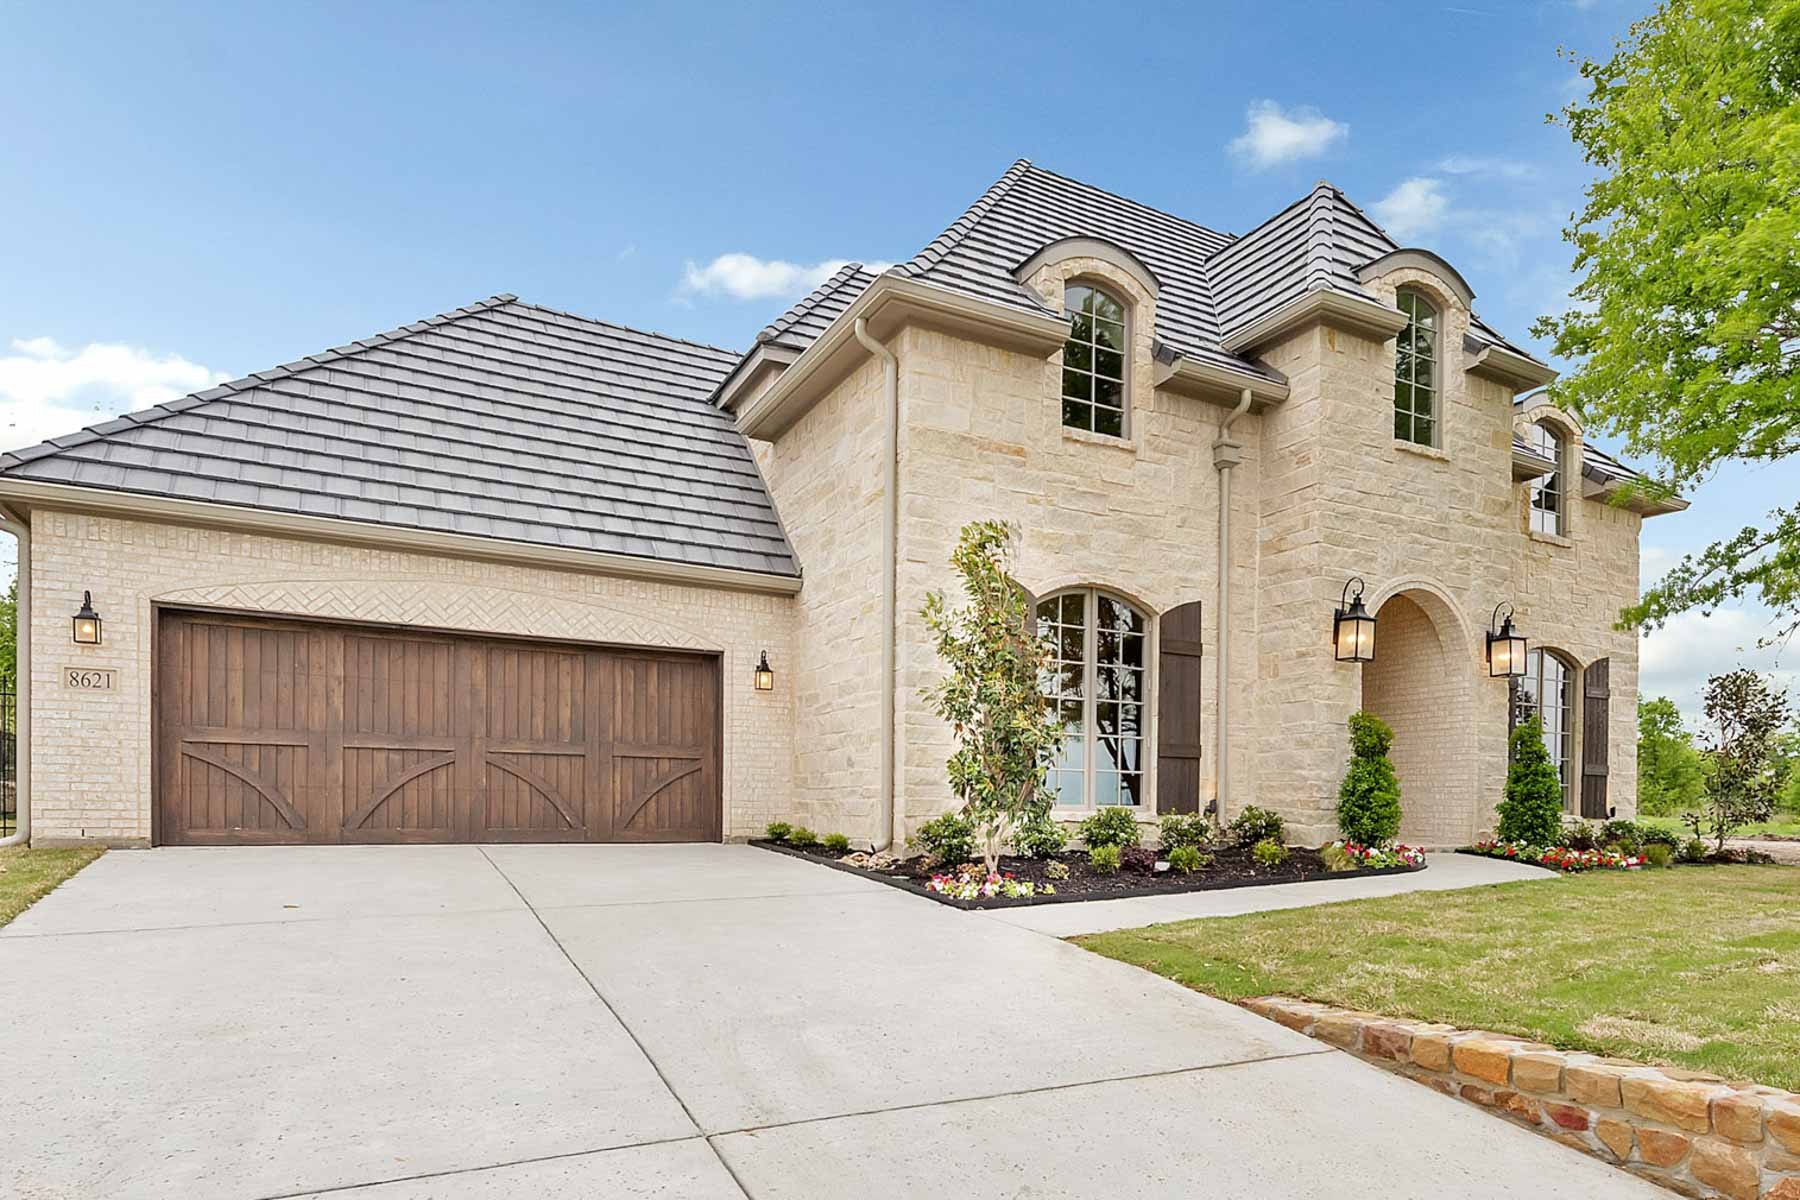 Single Family Home for Sale at Traditional La Cantera at Team Ranch 8621 Colina Terrace Benbrook, Texas, 76126 United States